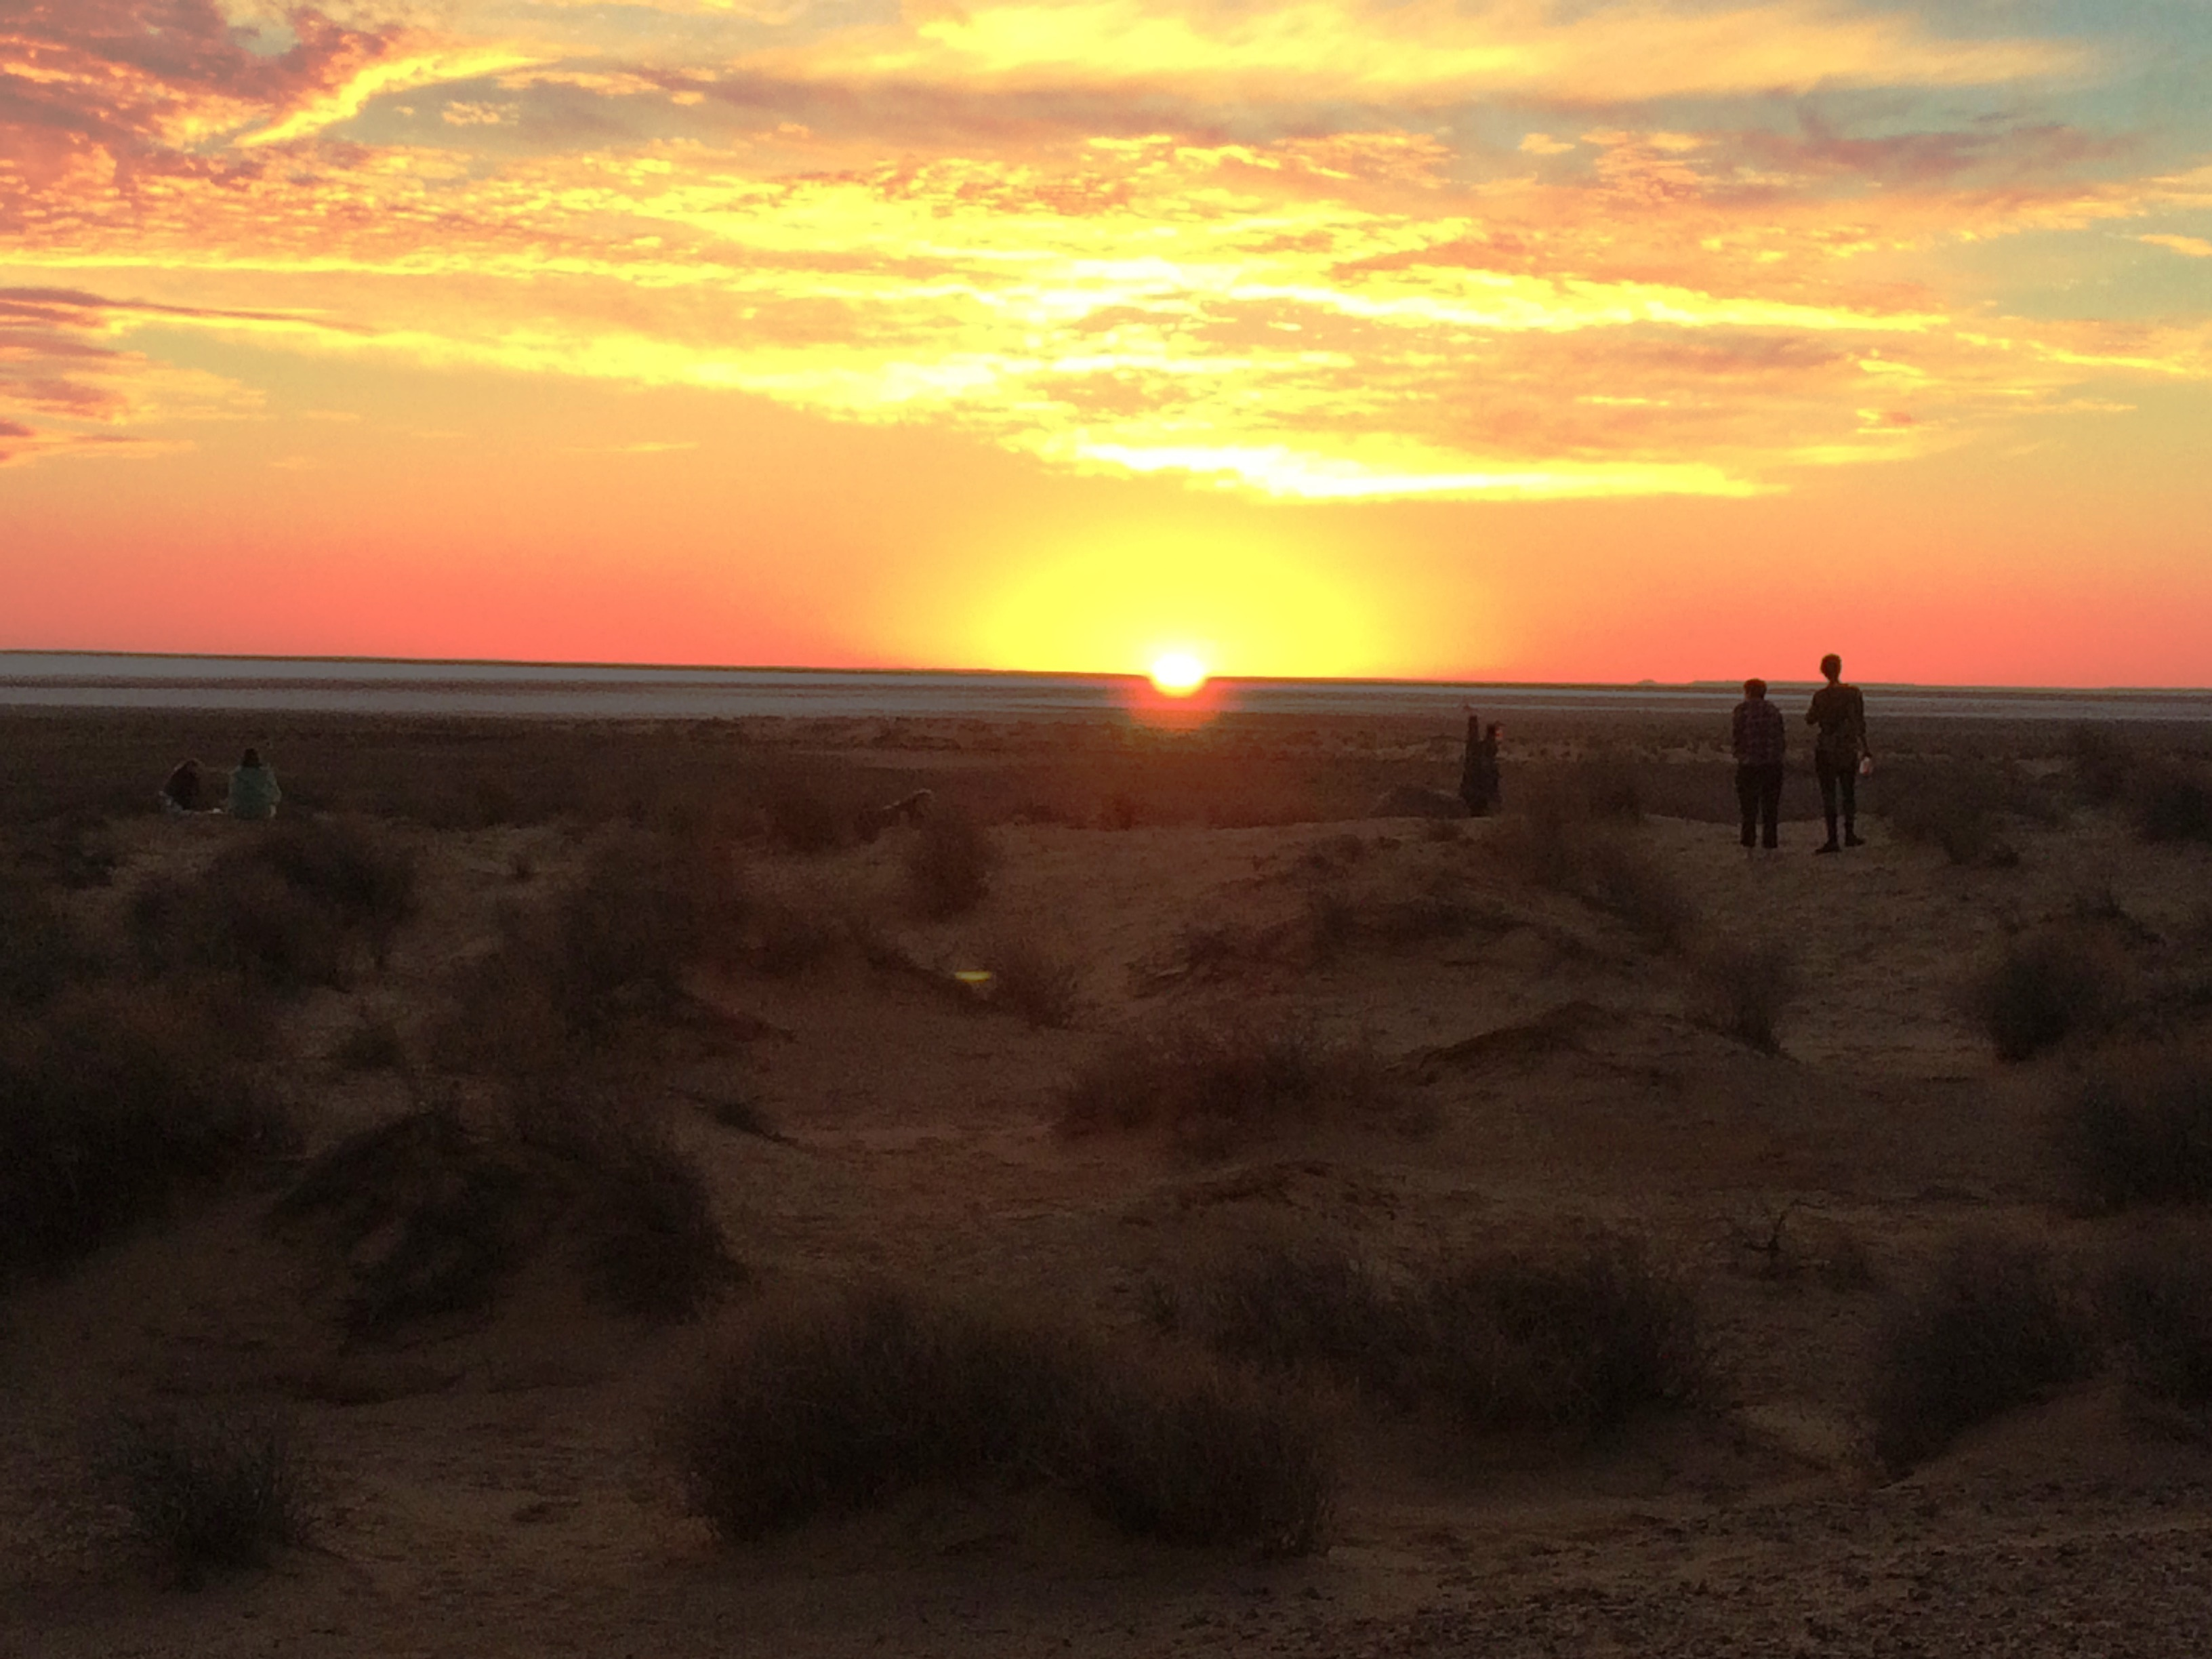 Sunset at Lake Eyre